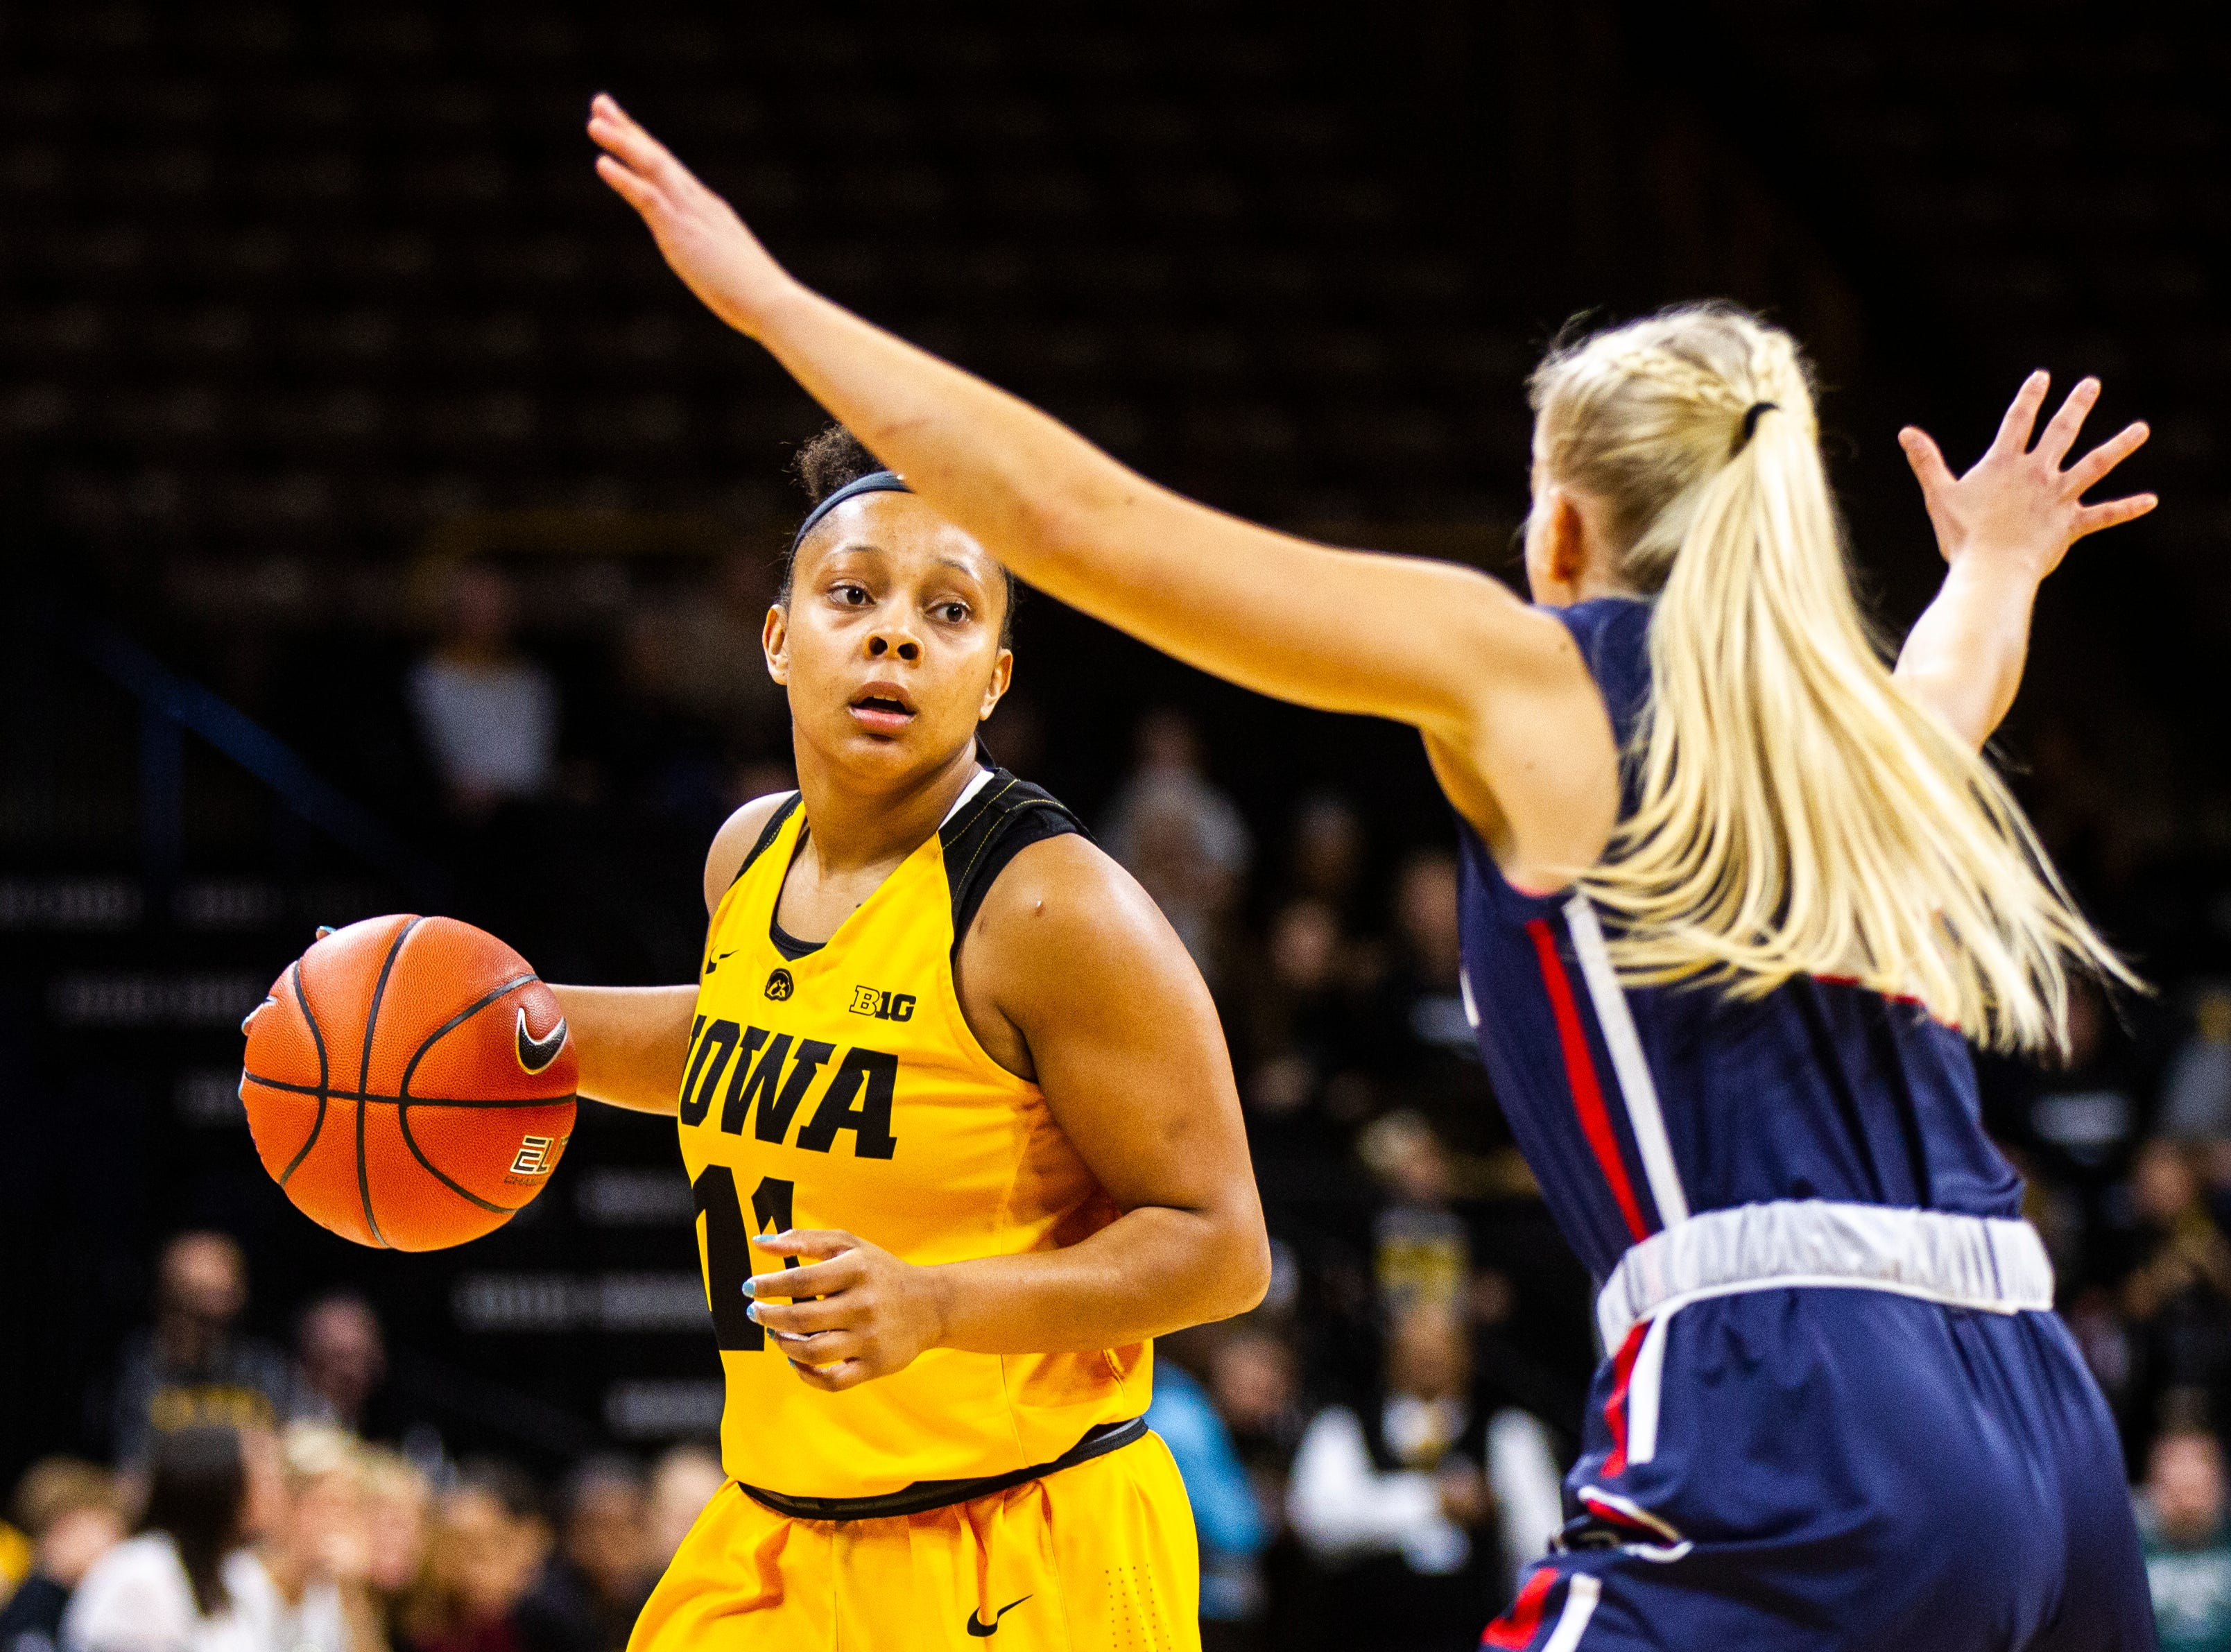 Iowa guard Tania Davis (11) looks to pass during a NCAA women's basketball game on Sunday, Dec. 2, 2018, at Carver-Hawkeye Arena in Iowa City.